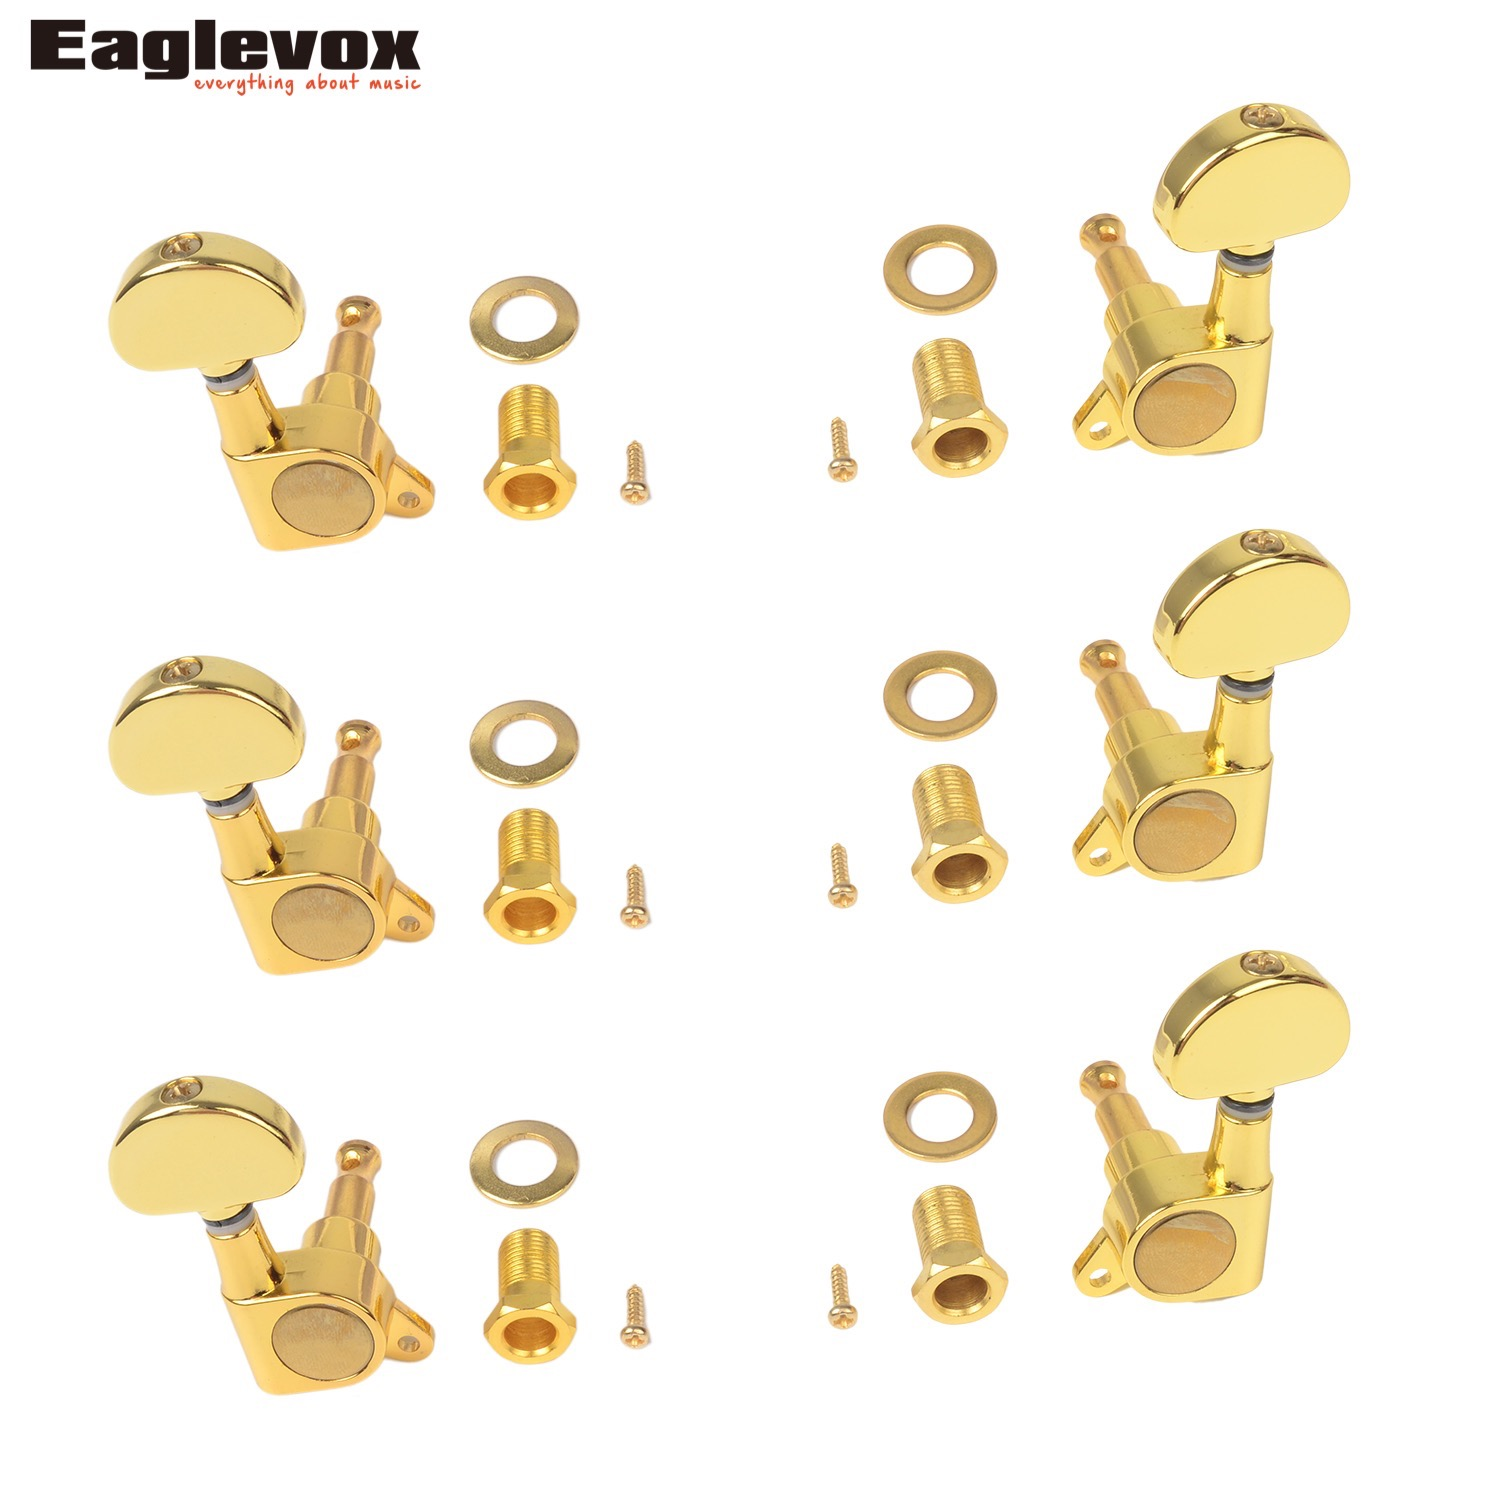 6 Pieces Acoustic Guitar Machine Heads Knobs Gold Plated AD-016JP Zinc Alloy Closed Knob Guitar String Tuning Peg Tuner sews alice aos 020b1p 2pcs left right classical guitar tuning key plated peg tuner machine head string tuner